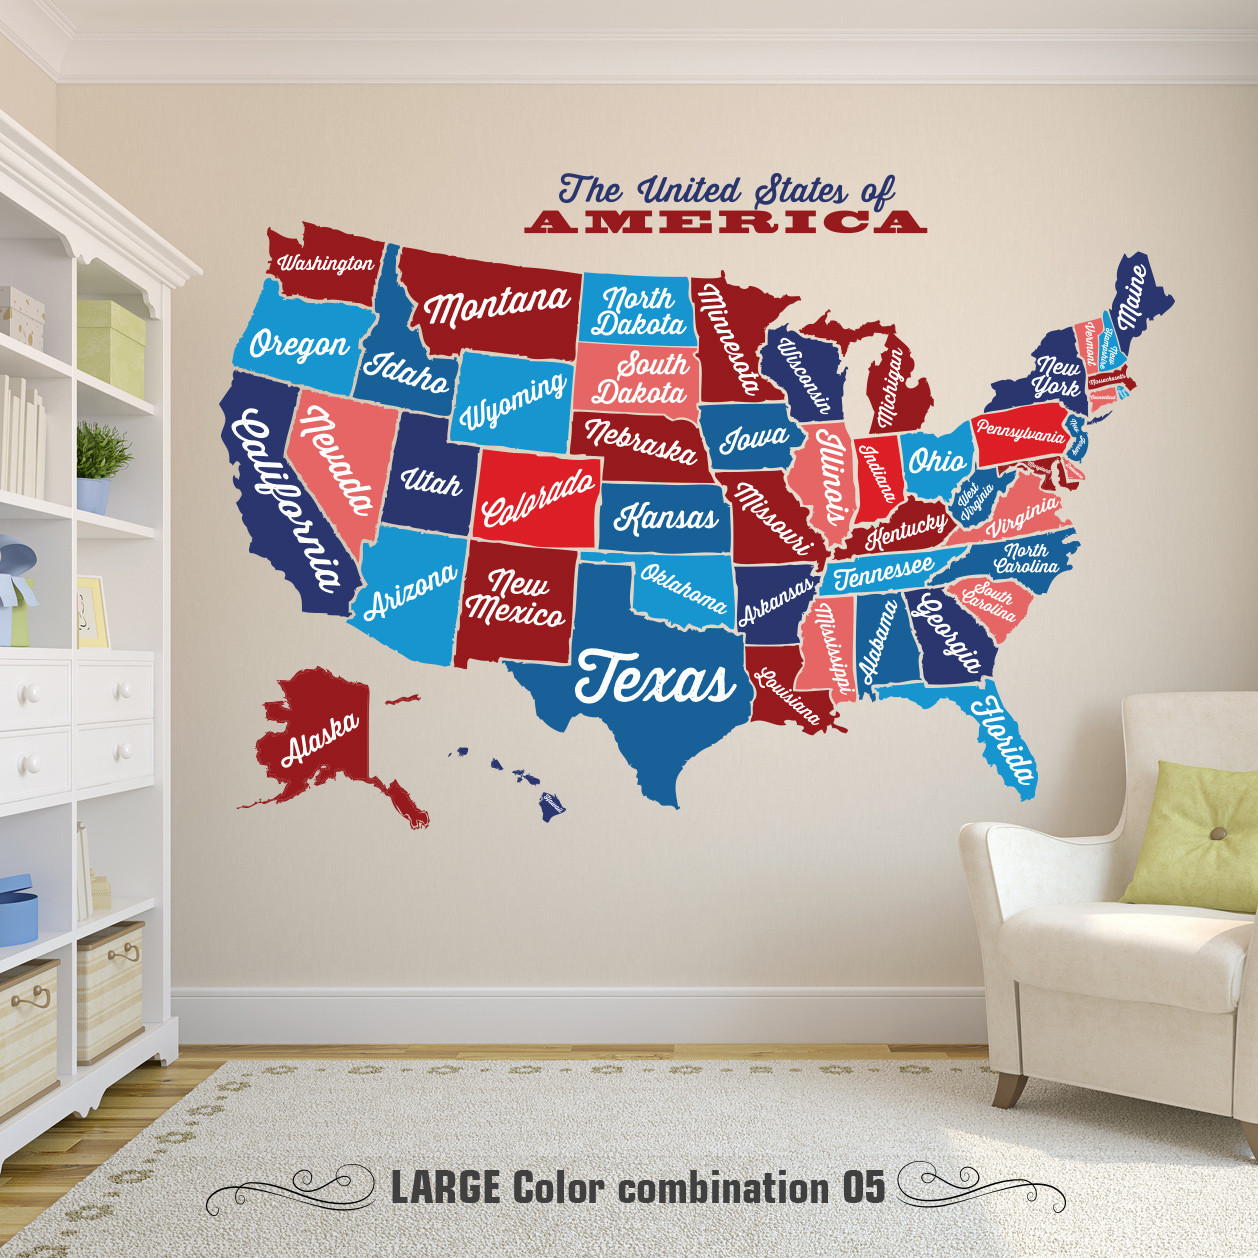 USA Wall Decal Map Vintage Retro